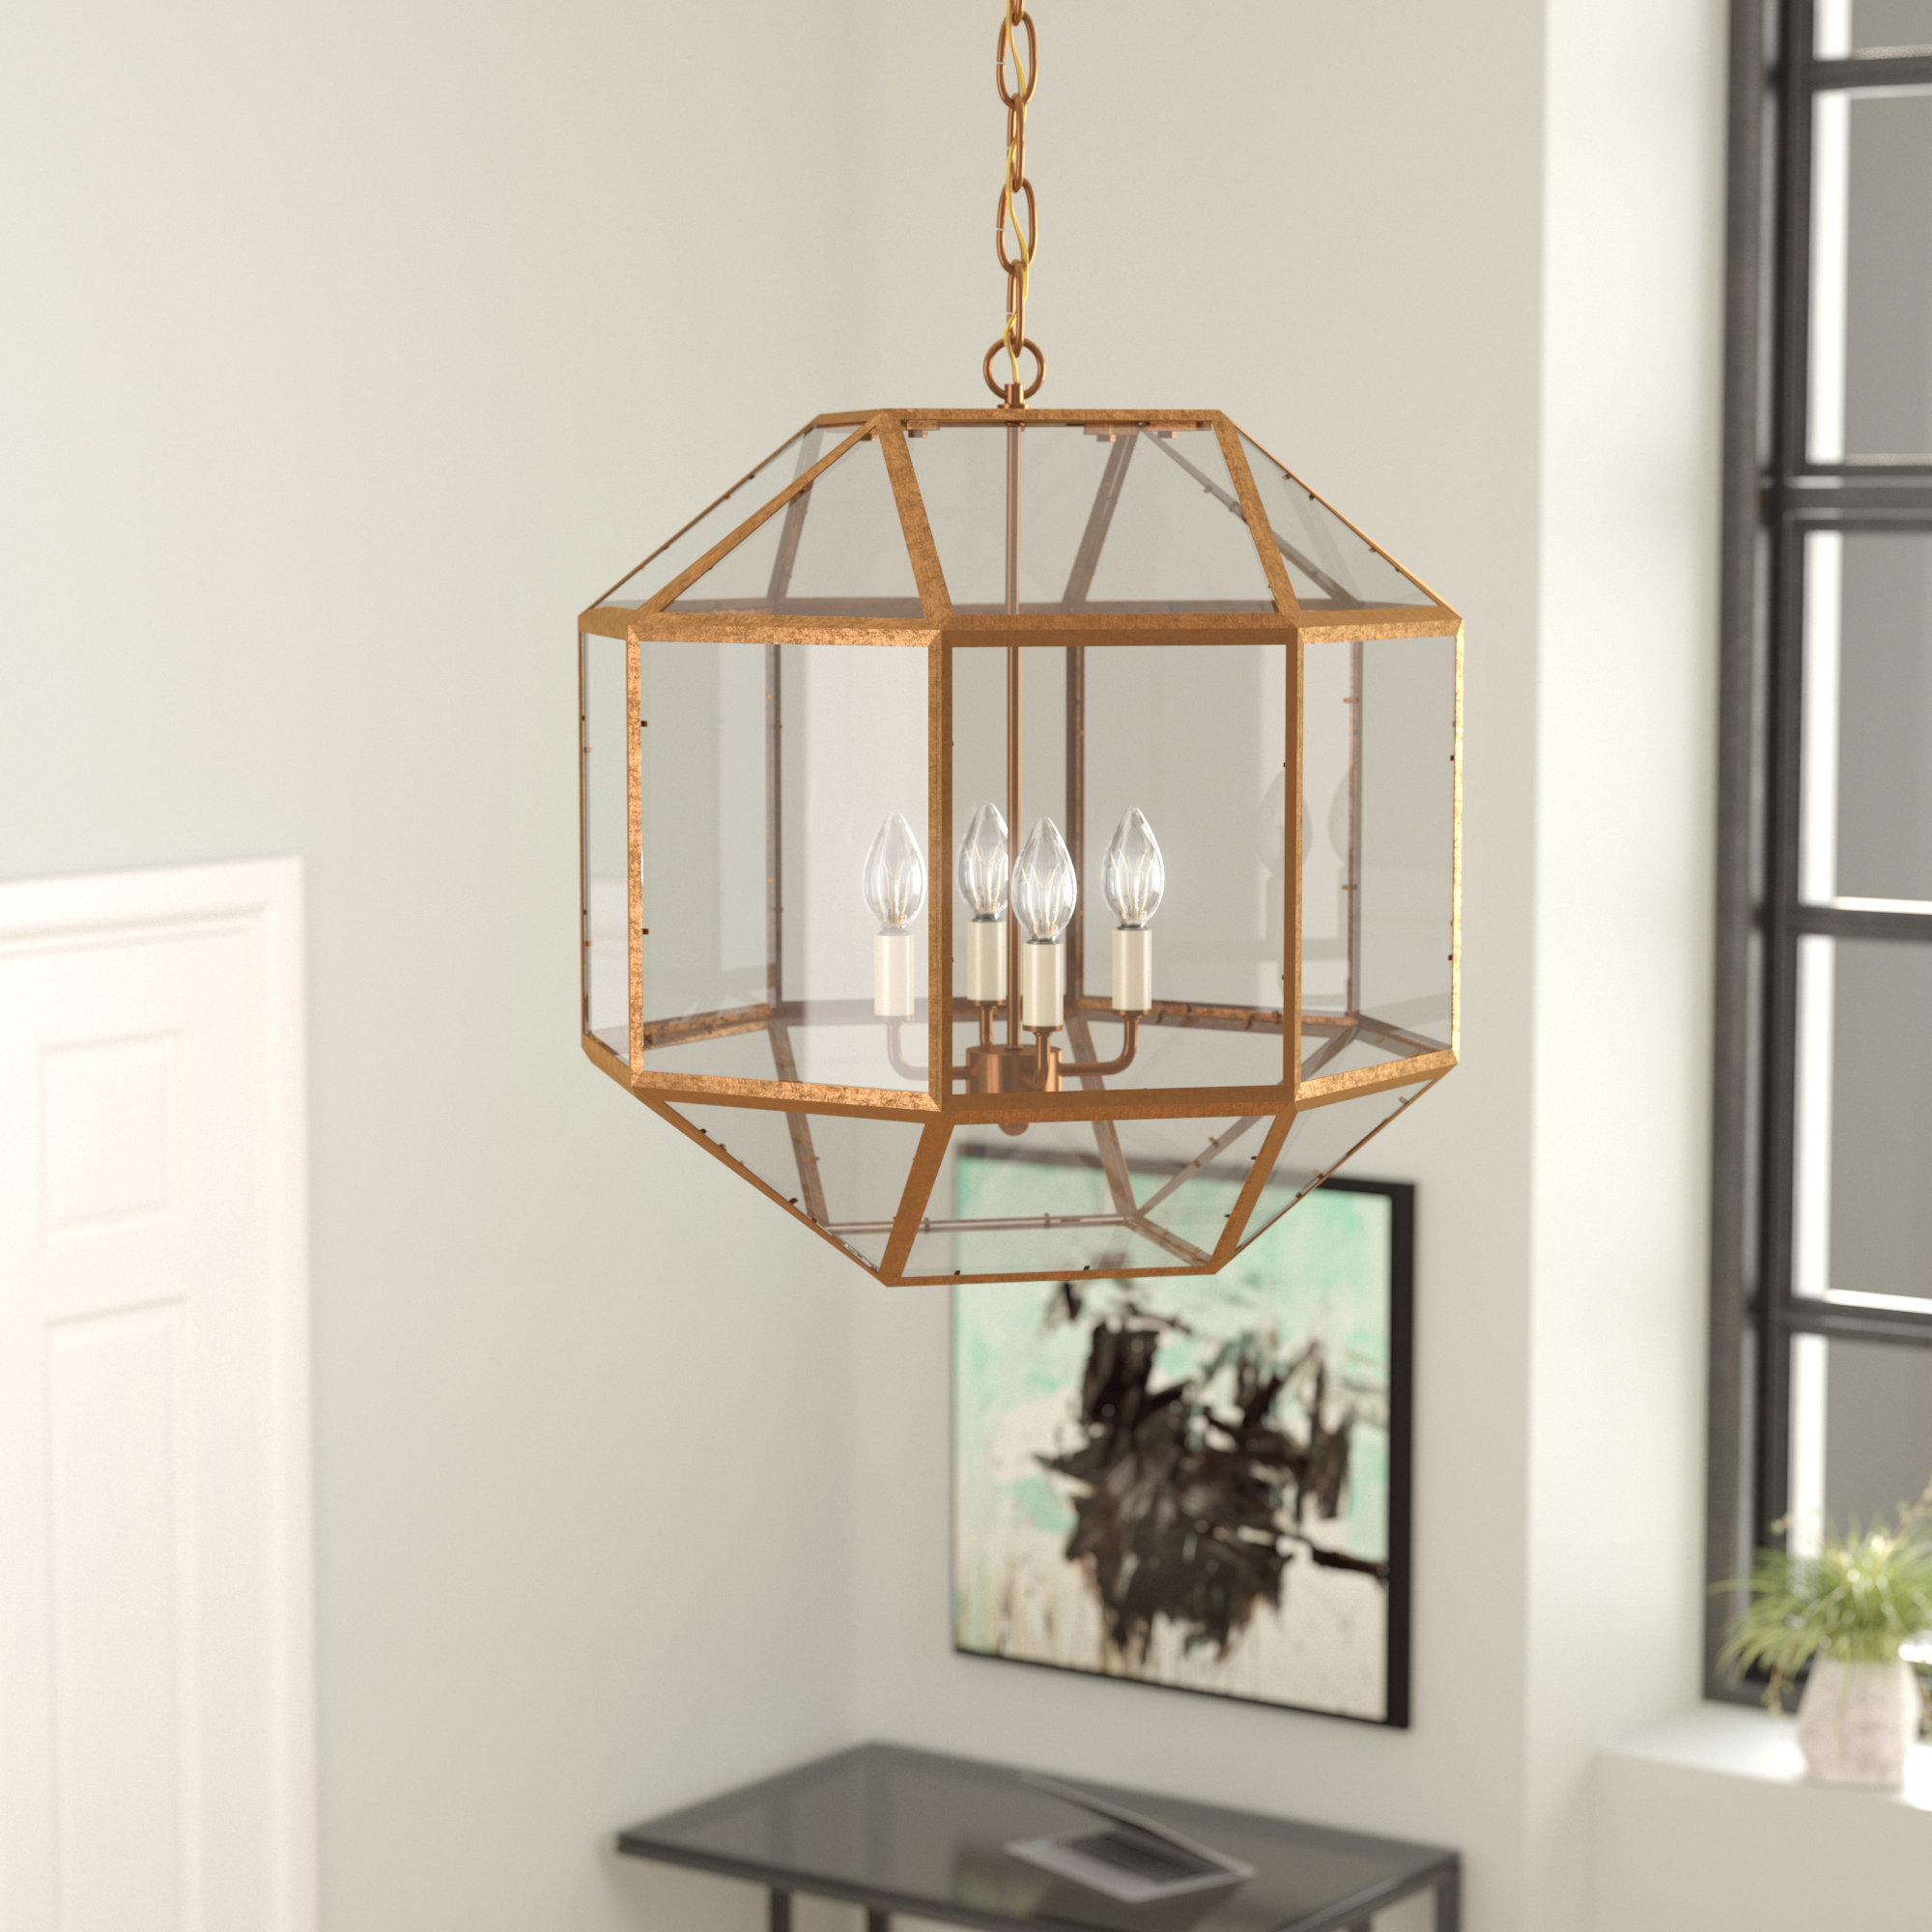 Burkeville 4 Light Geometric Chandelier In Best And Newest Tiana 4 Light Geometric Chandeliers (View 2 of 20)